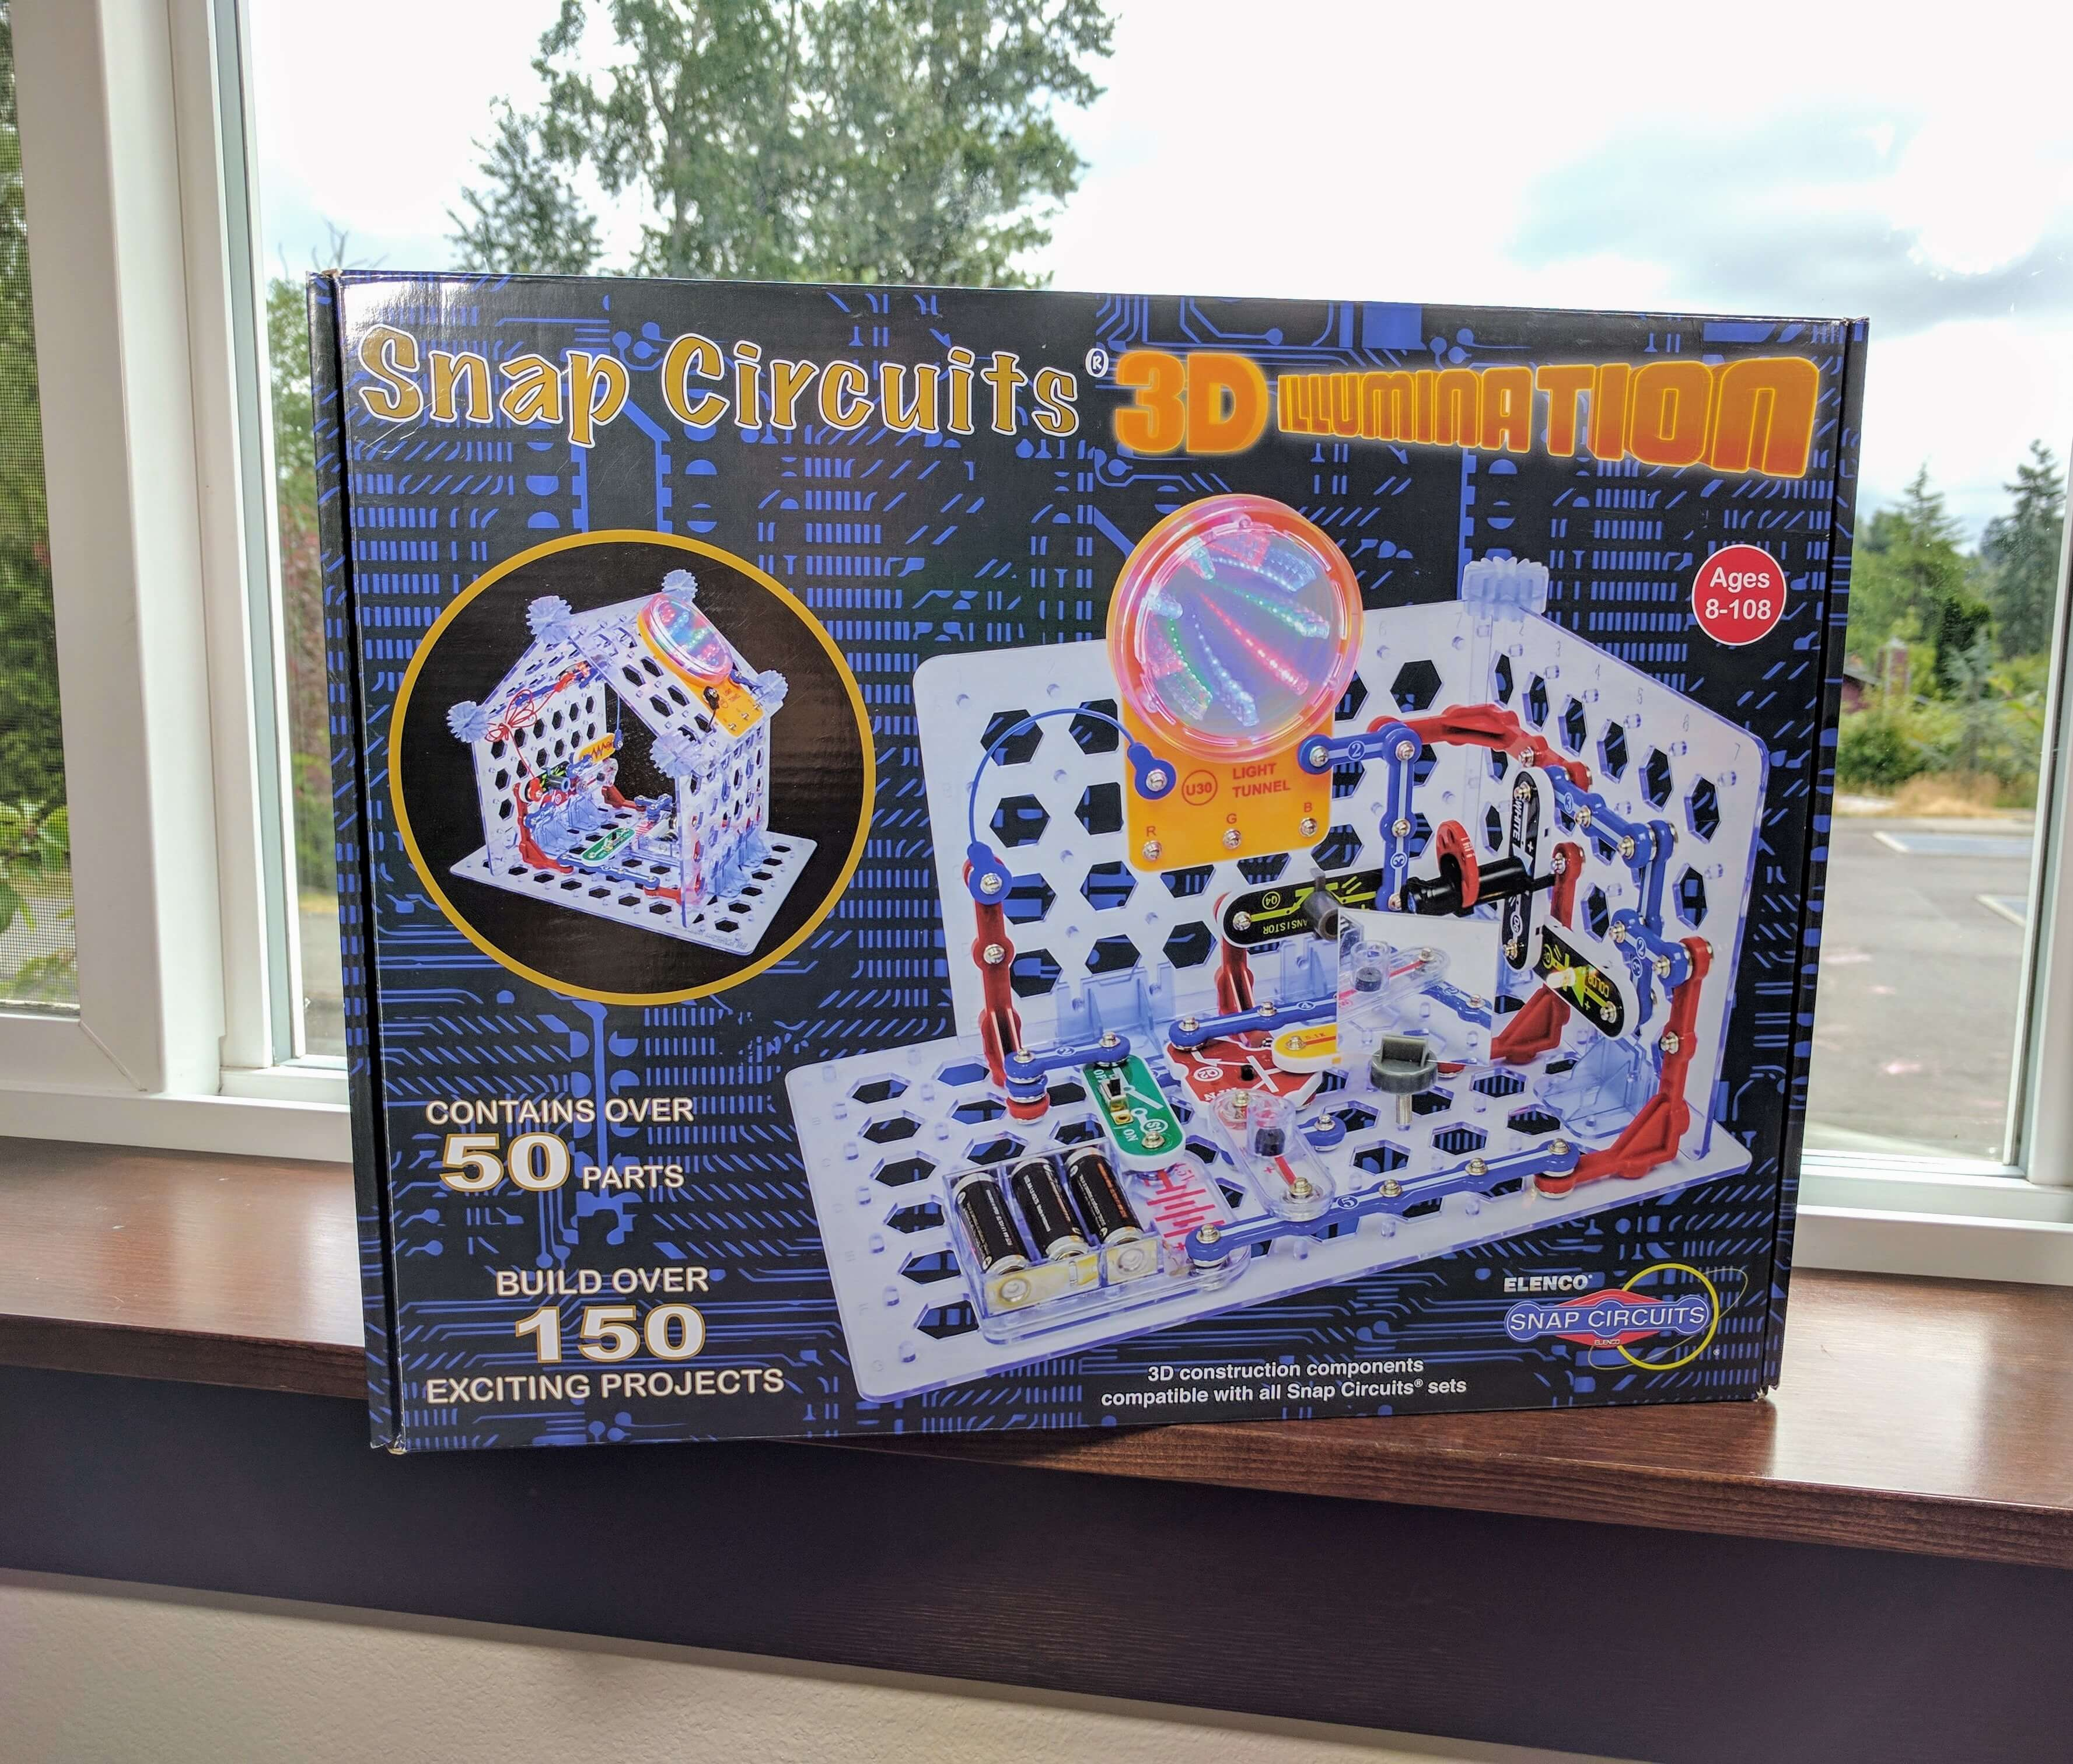 Snap Circuits 3d Illumination Review Electronics Kit Bliss Learn Circuitsr By Elencor Replacement Parts Richly